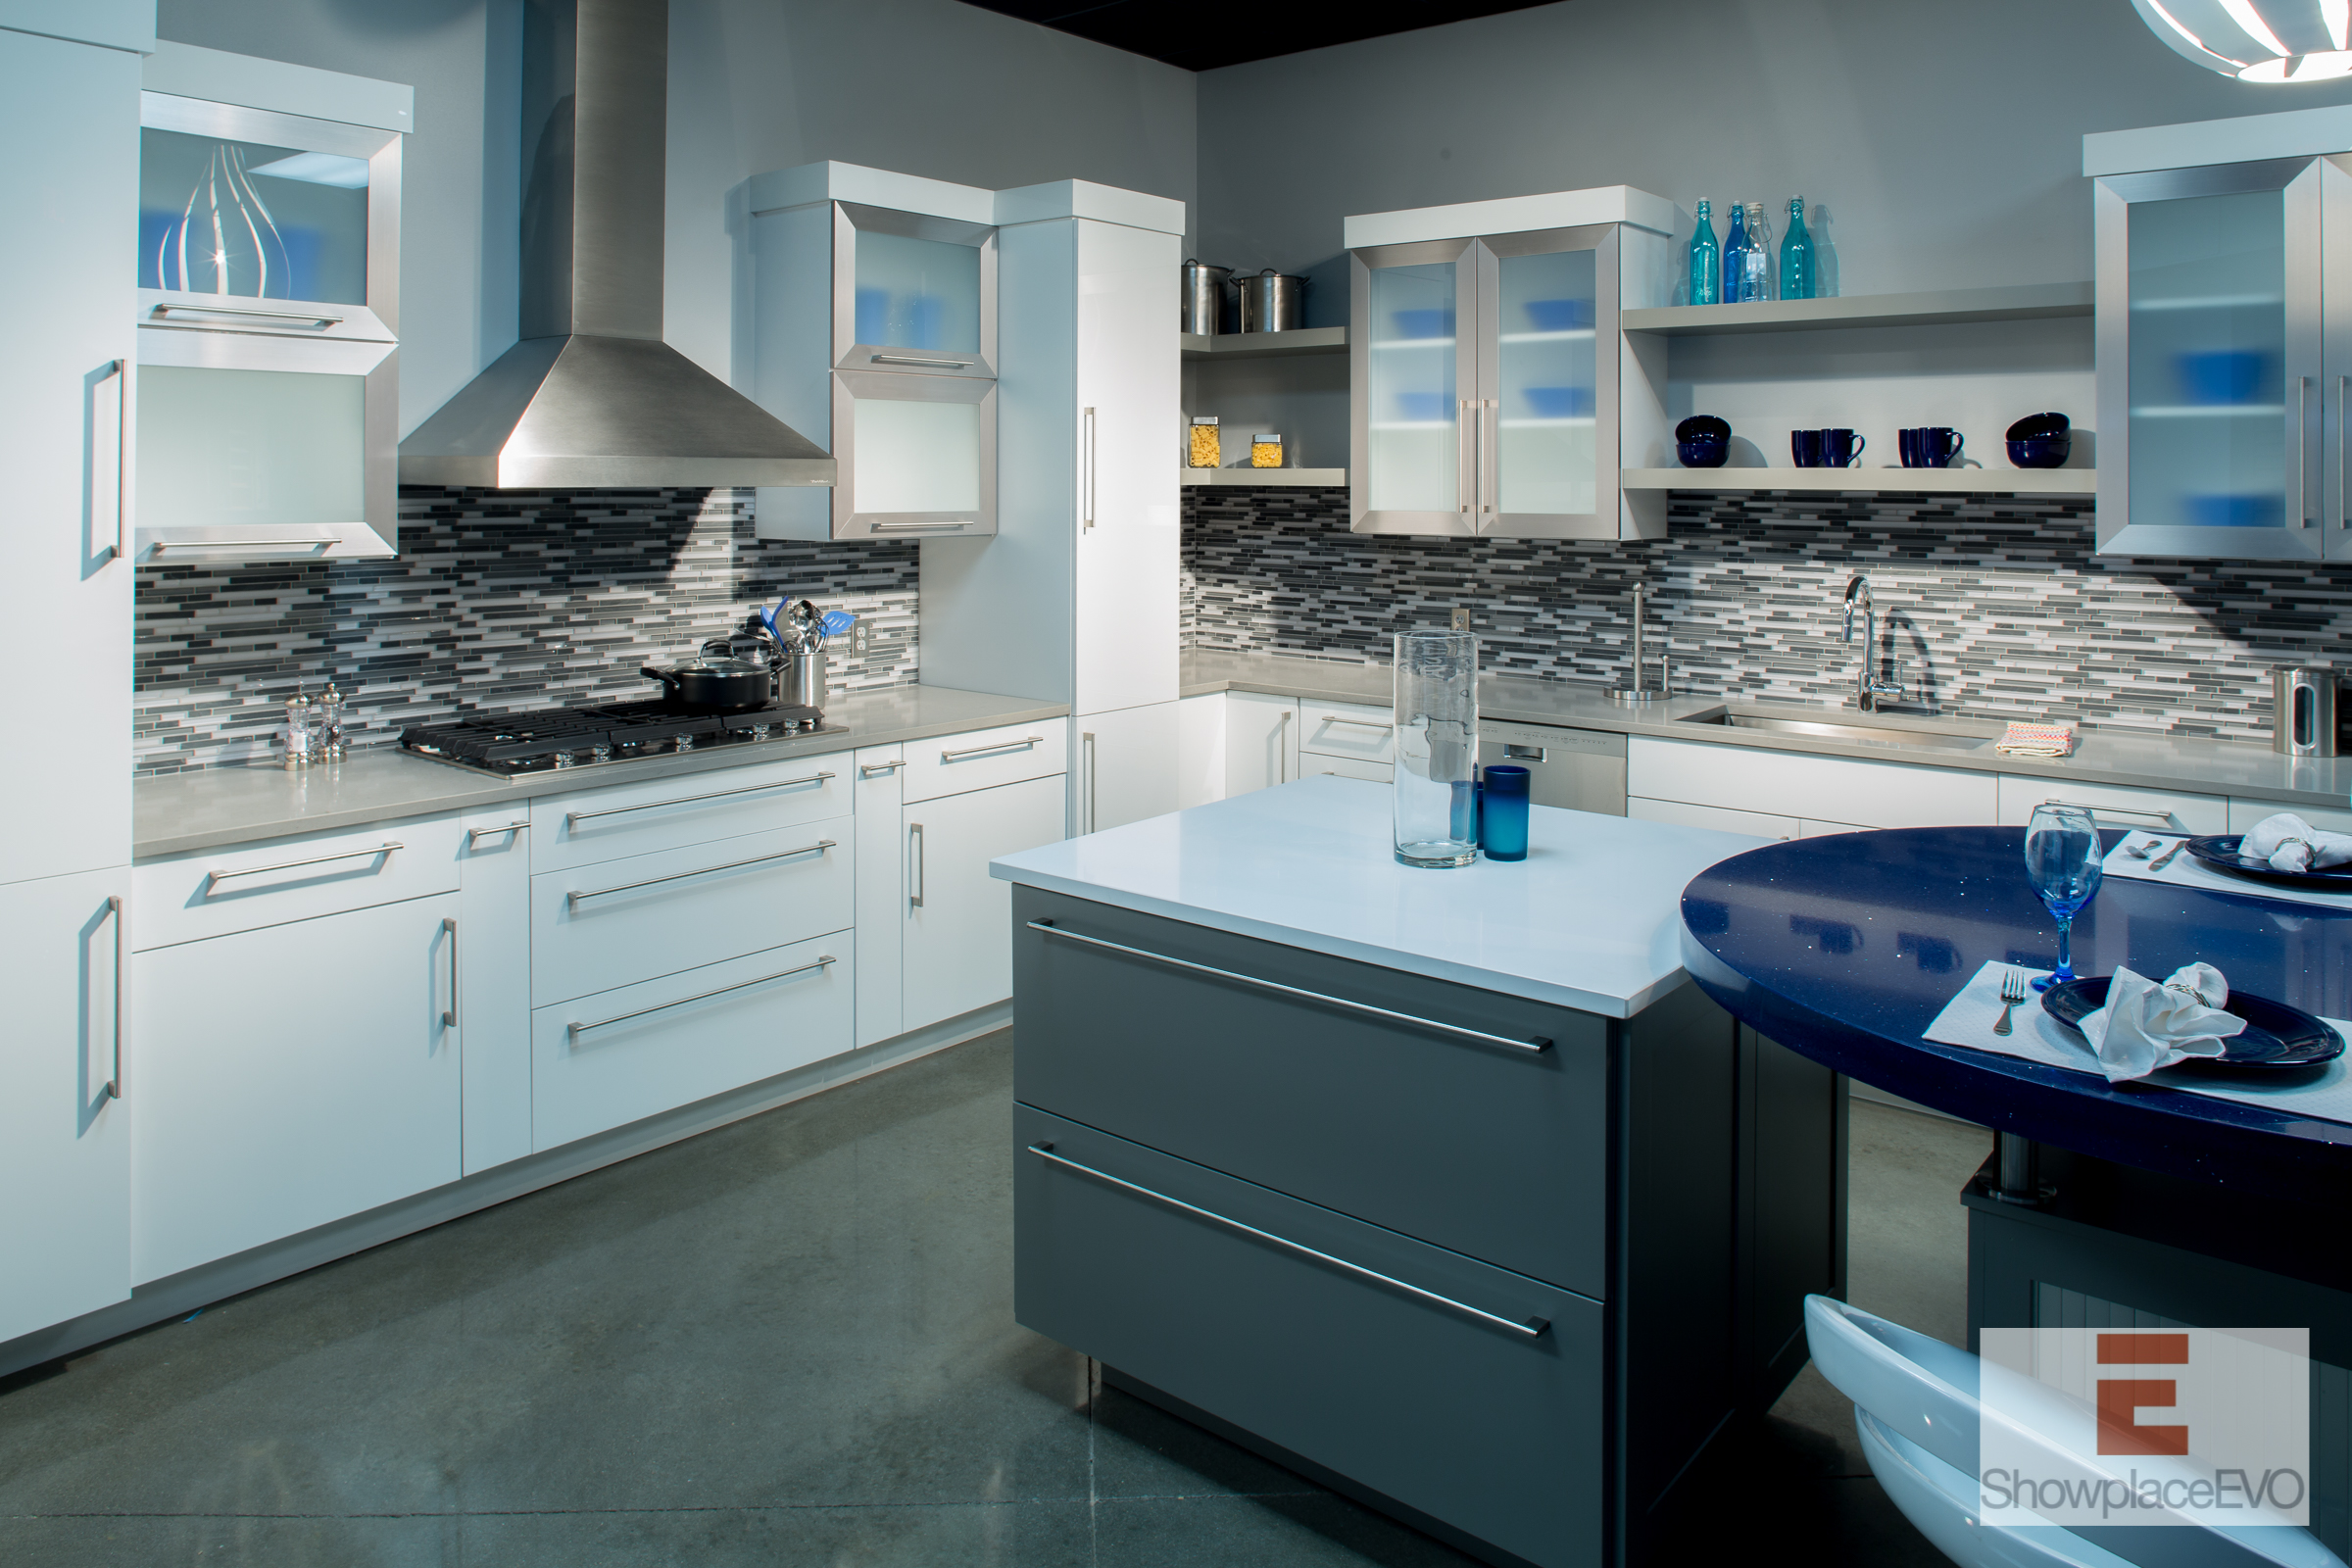 Showplace Evo Full Access Cabinetry Duet